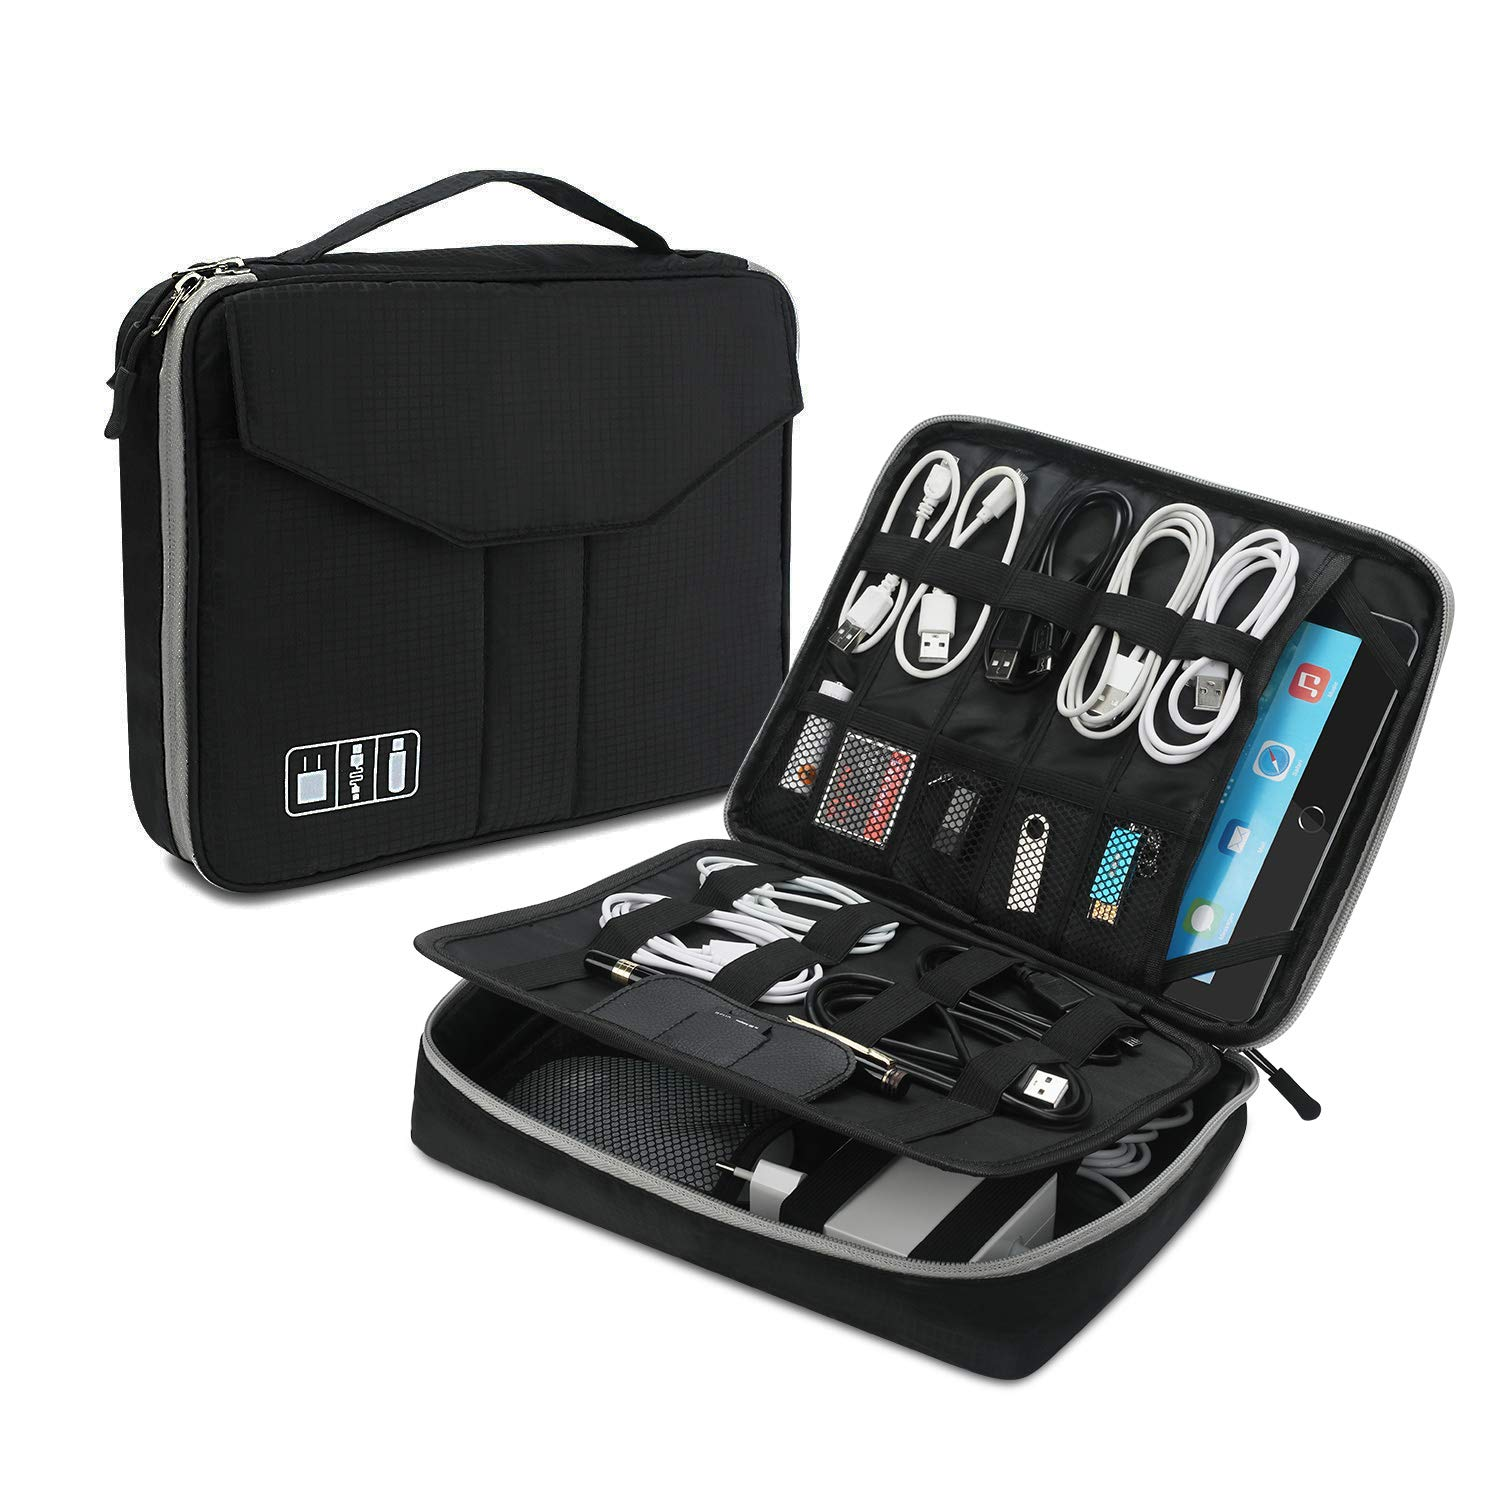 Electronics Organizer, Jelly Comb Double Layer Electronic Accessories Travel Gadget Shockproof & Waterproof Carry Case for Cables/Hard Drive/Laptop Charger/iPad 9.7''and More-(Black Oversize)